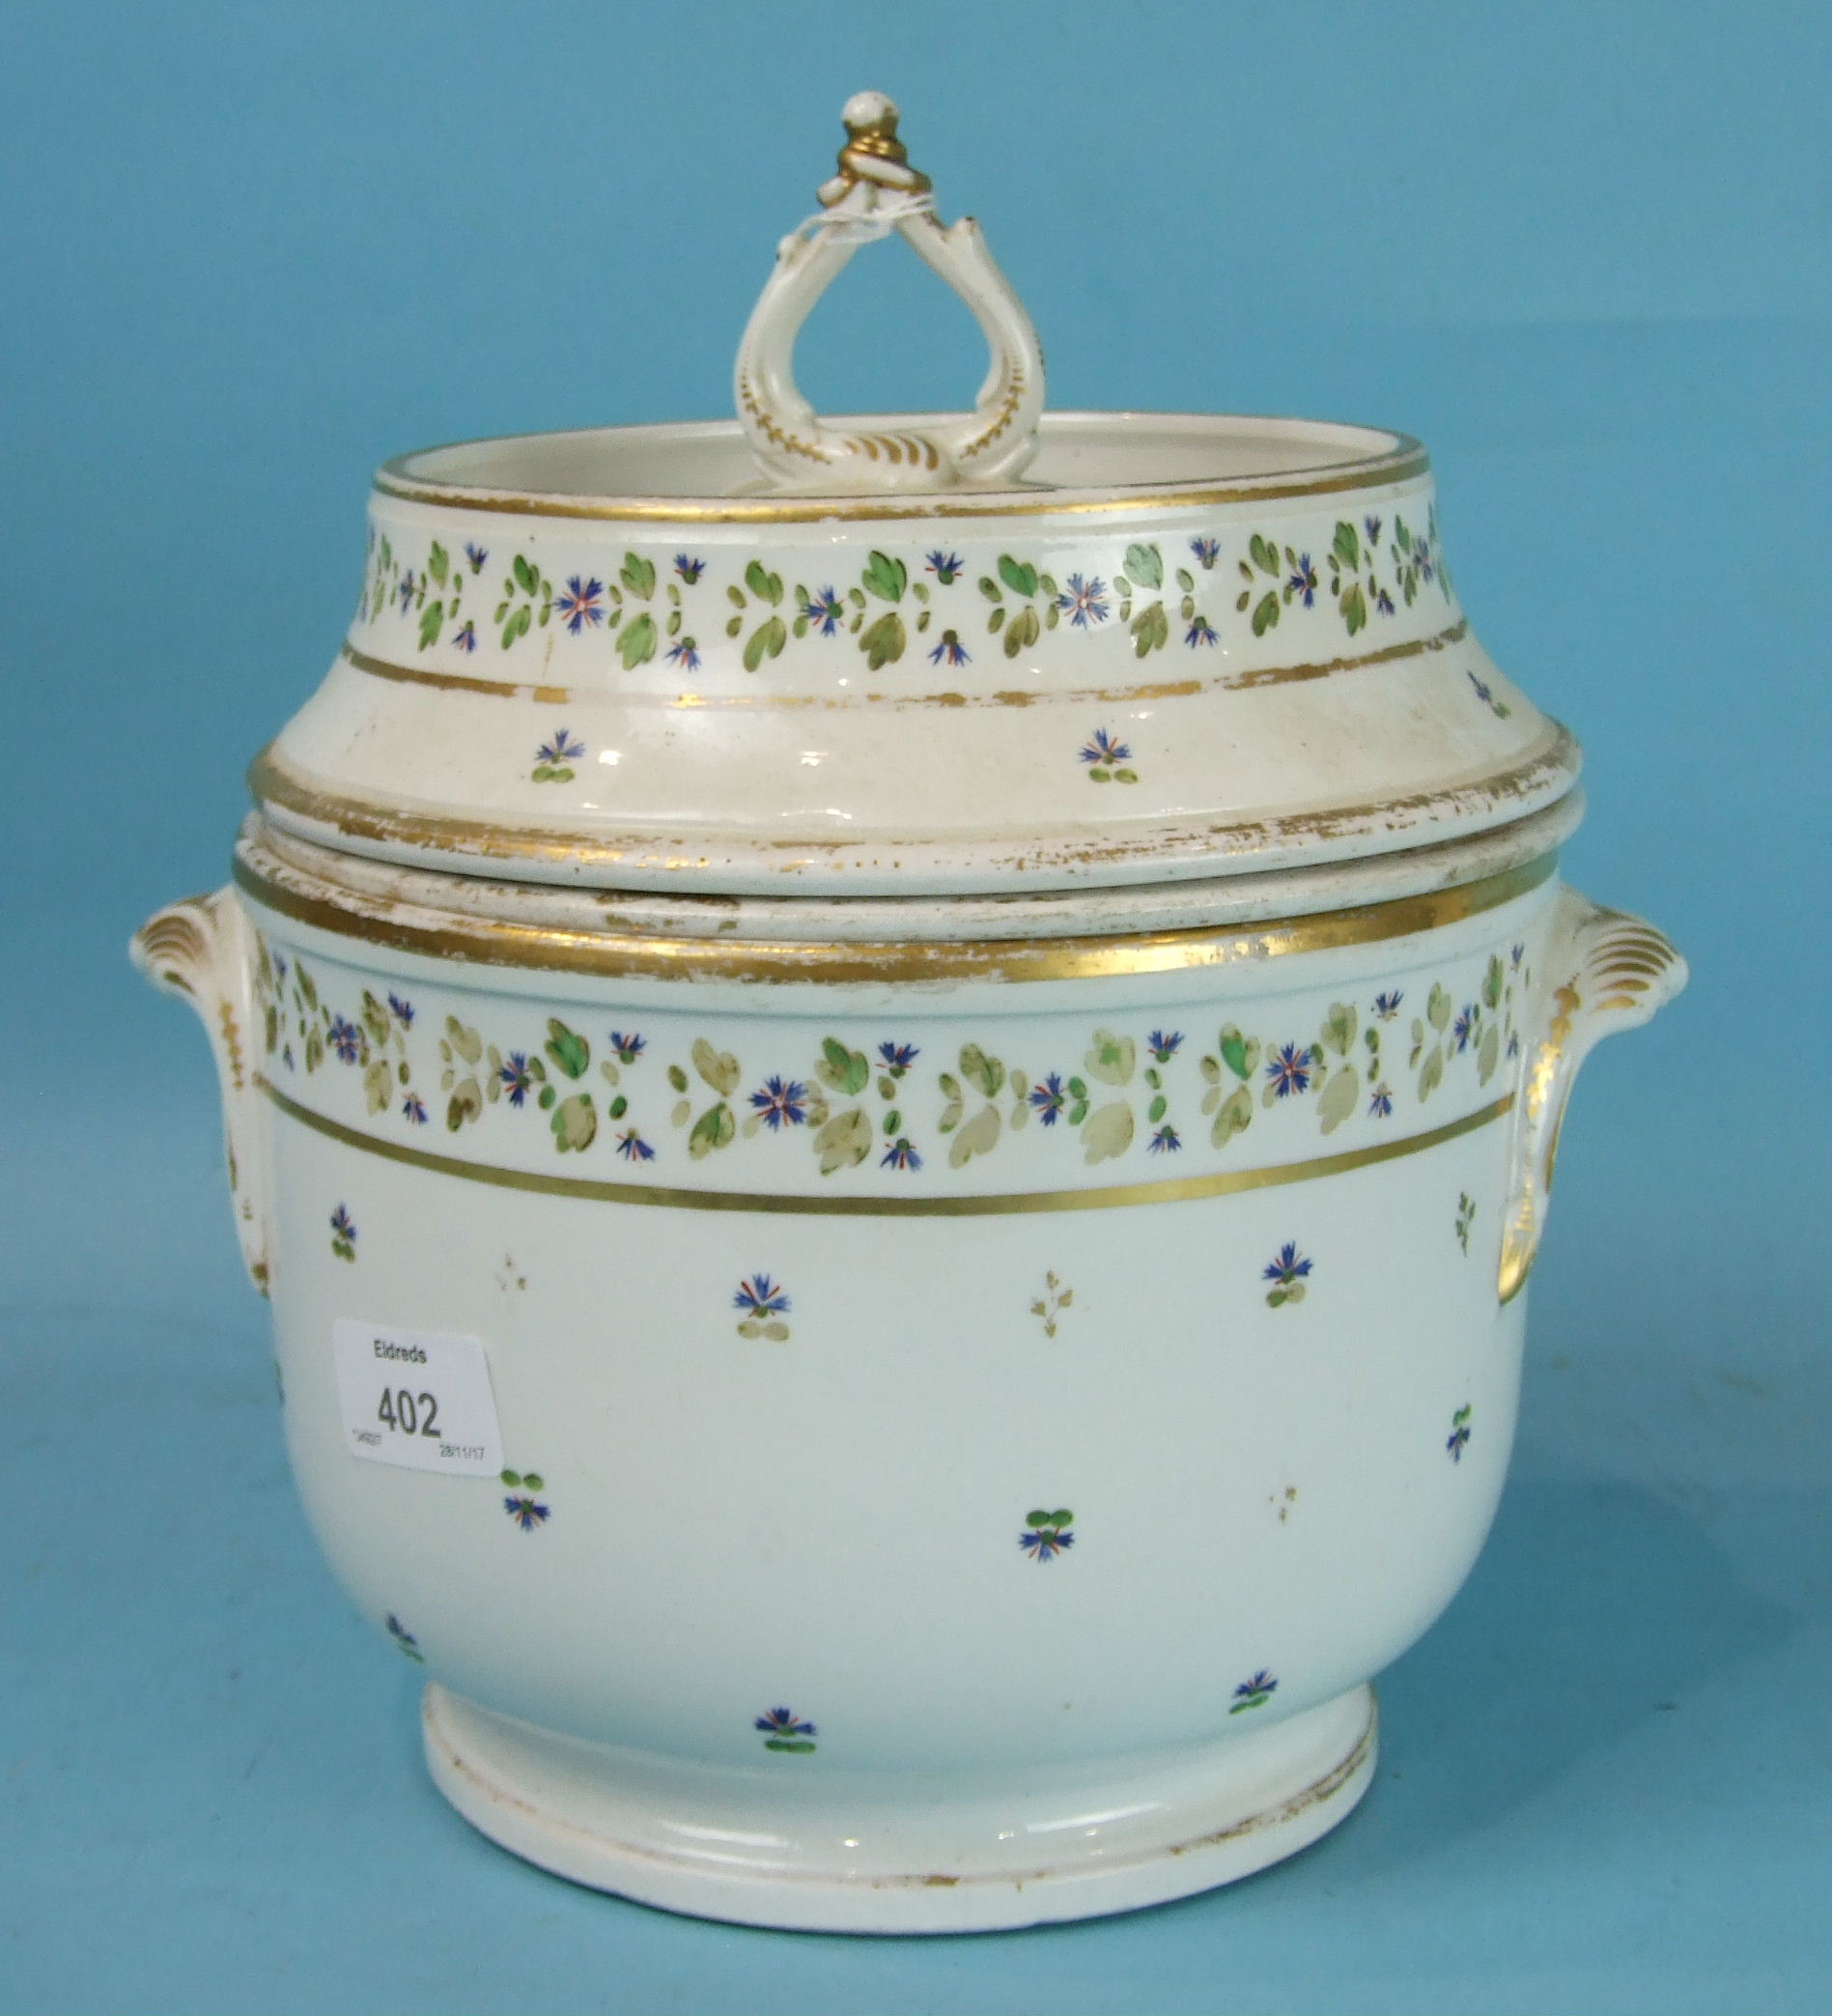 Lot 402 - A 19th century English porcelain ice pail, cover and liner decorated with lightly-scattered